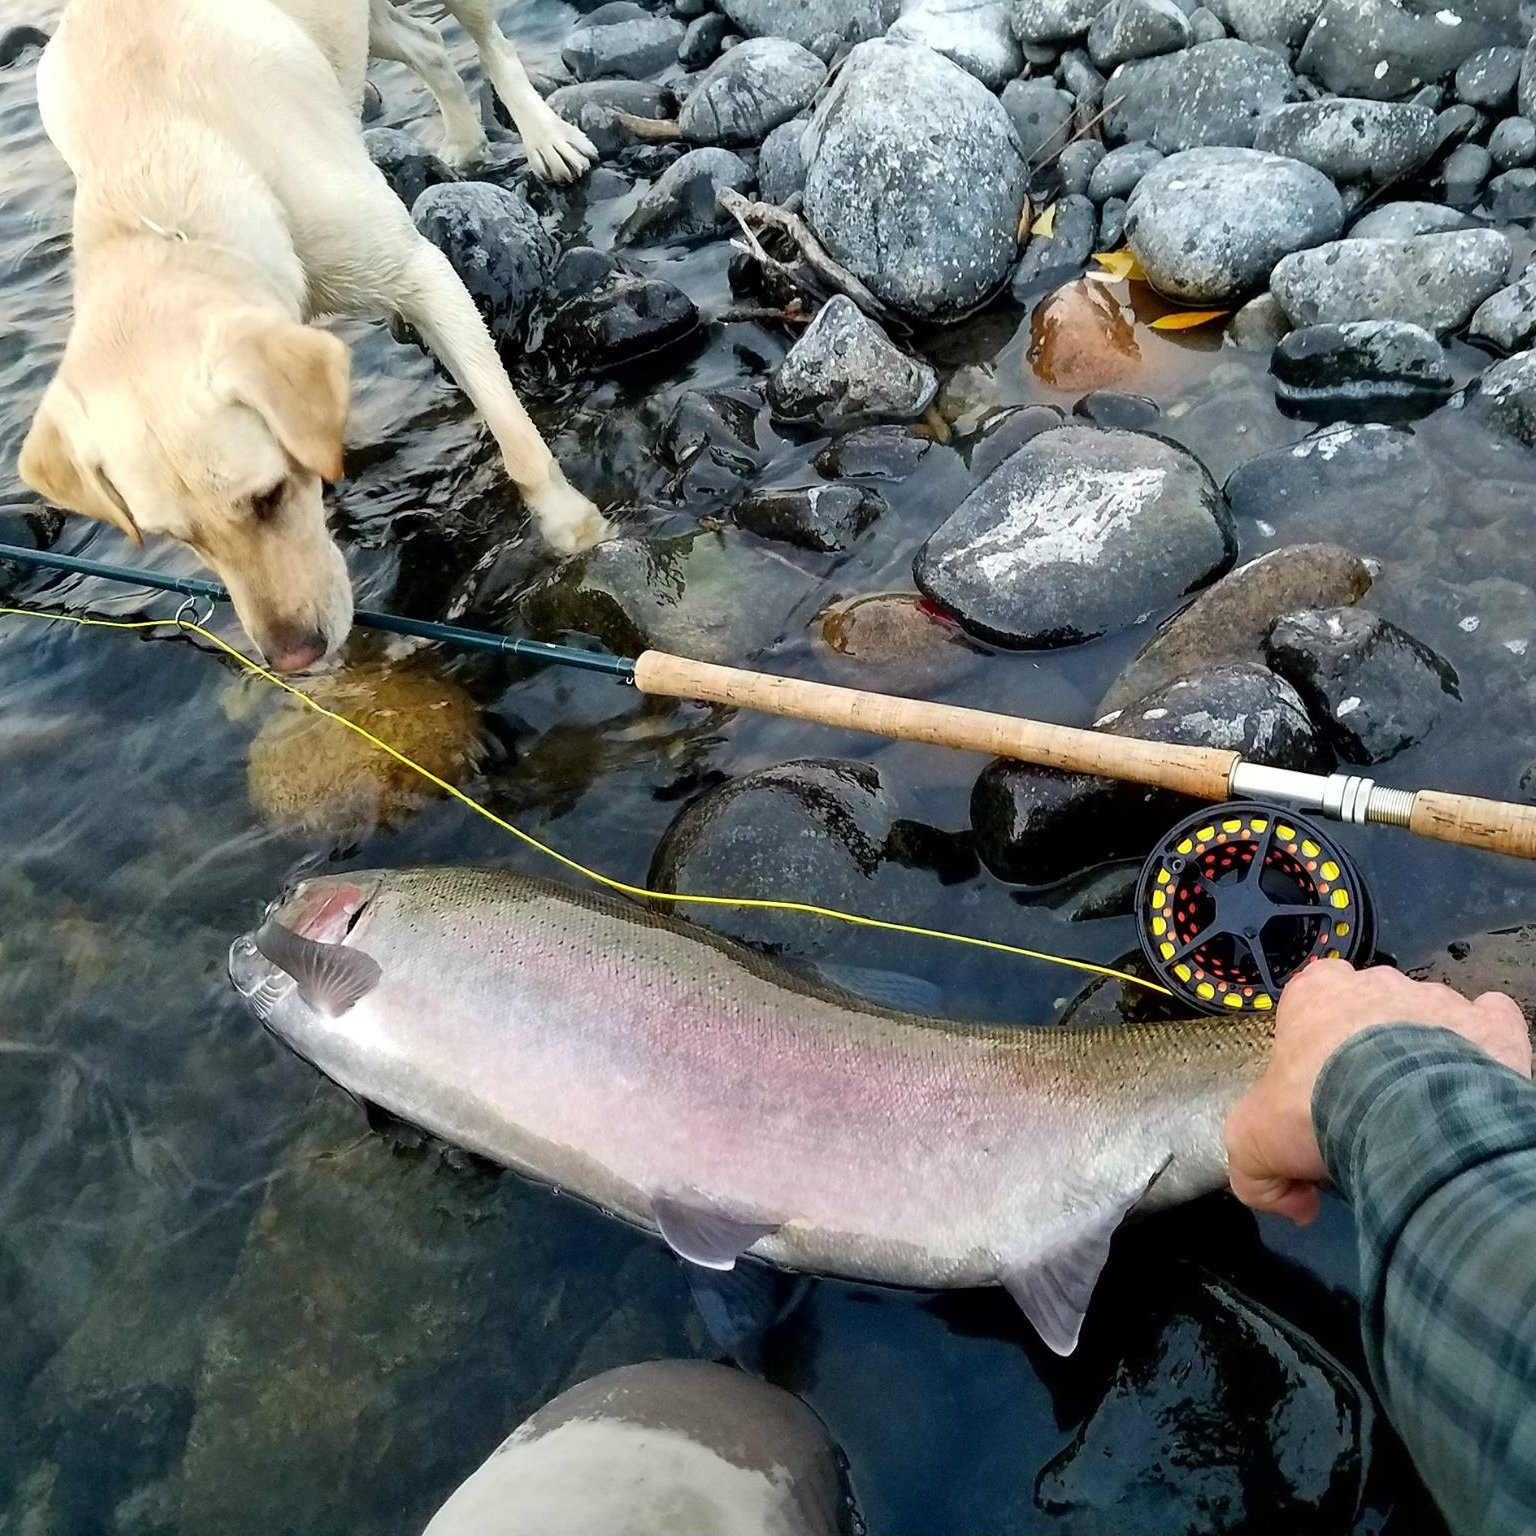 White Pine Outfitters - Guides | Gear Exchange | Fly ShopCheck out their guided fishing trips, fly fishing gear, and quality used and new outdoor equipment. They're encouraging a healthy lifestyle, via outdoor recreation.309 S Main St, whitepine-outfitters.com, (208) 883-3900